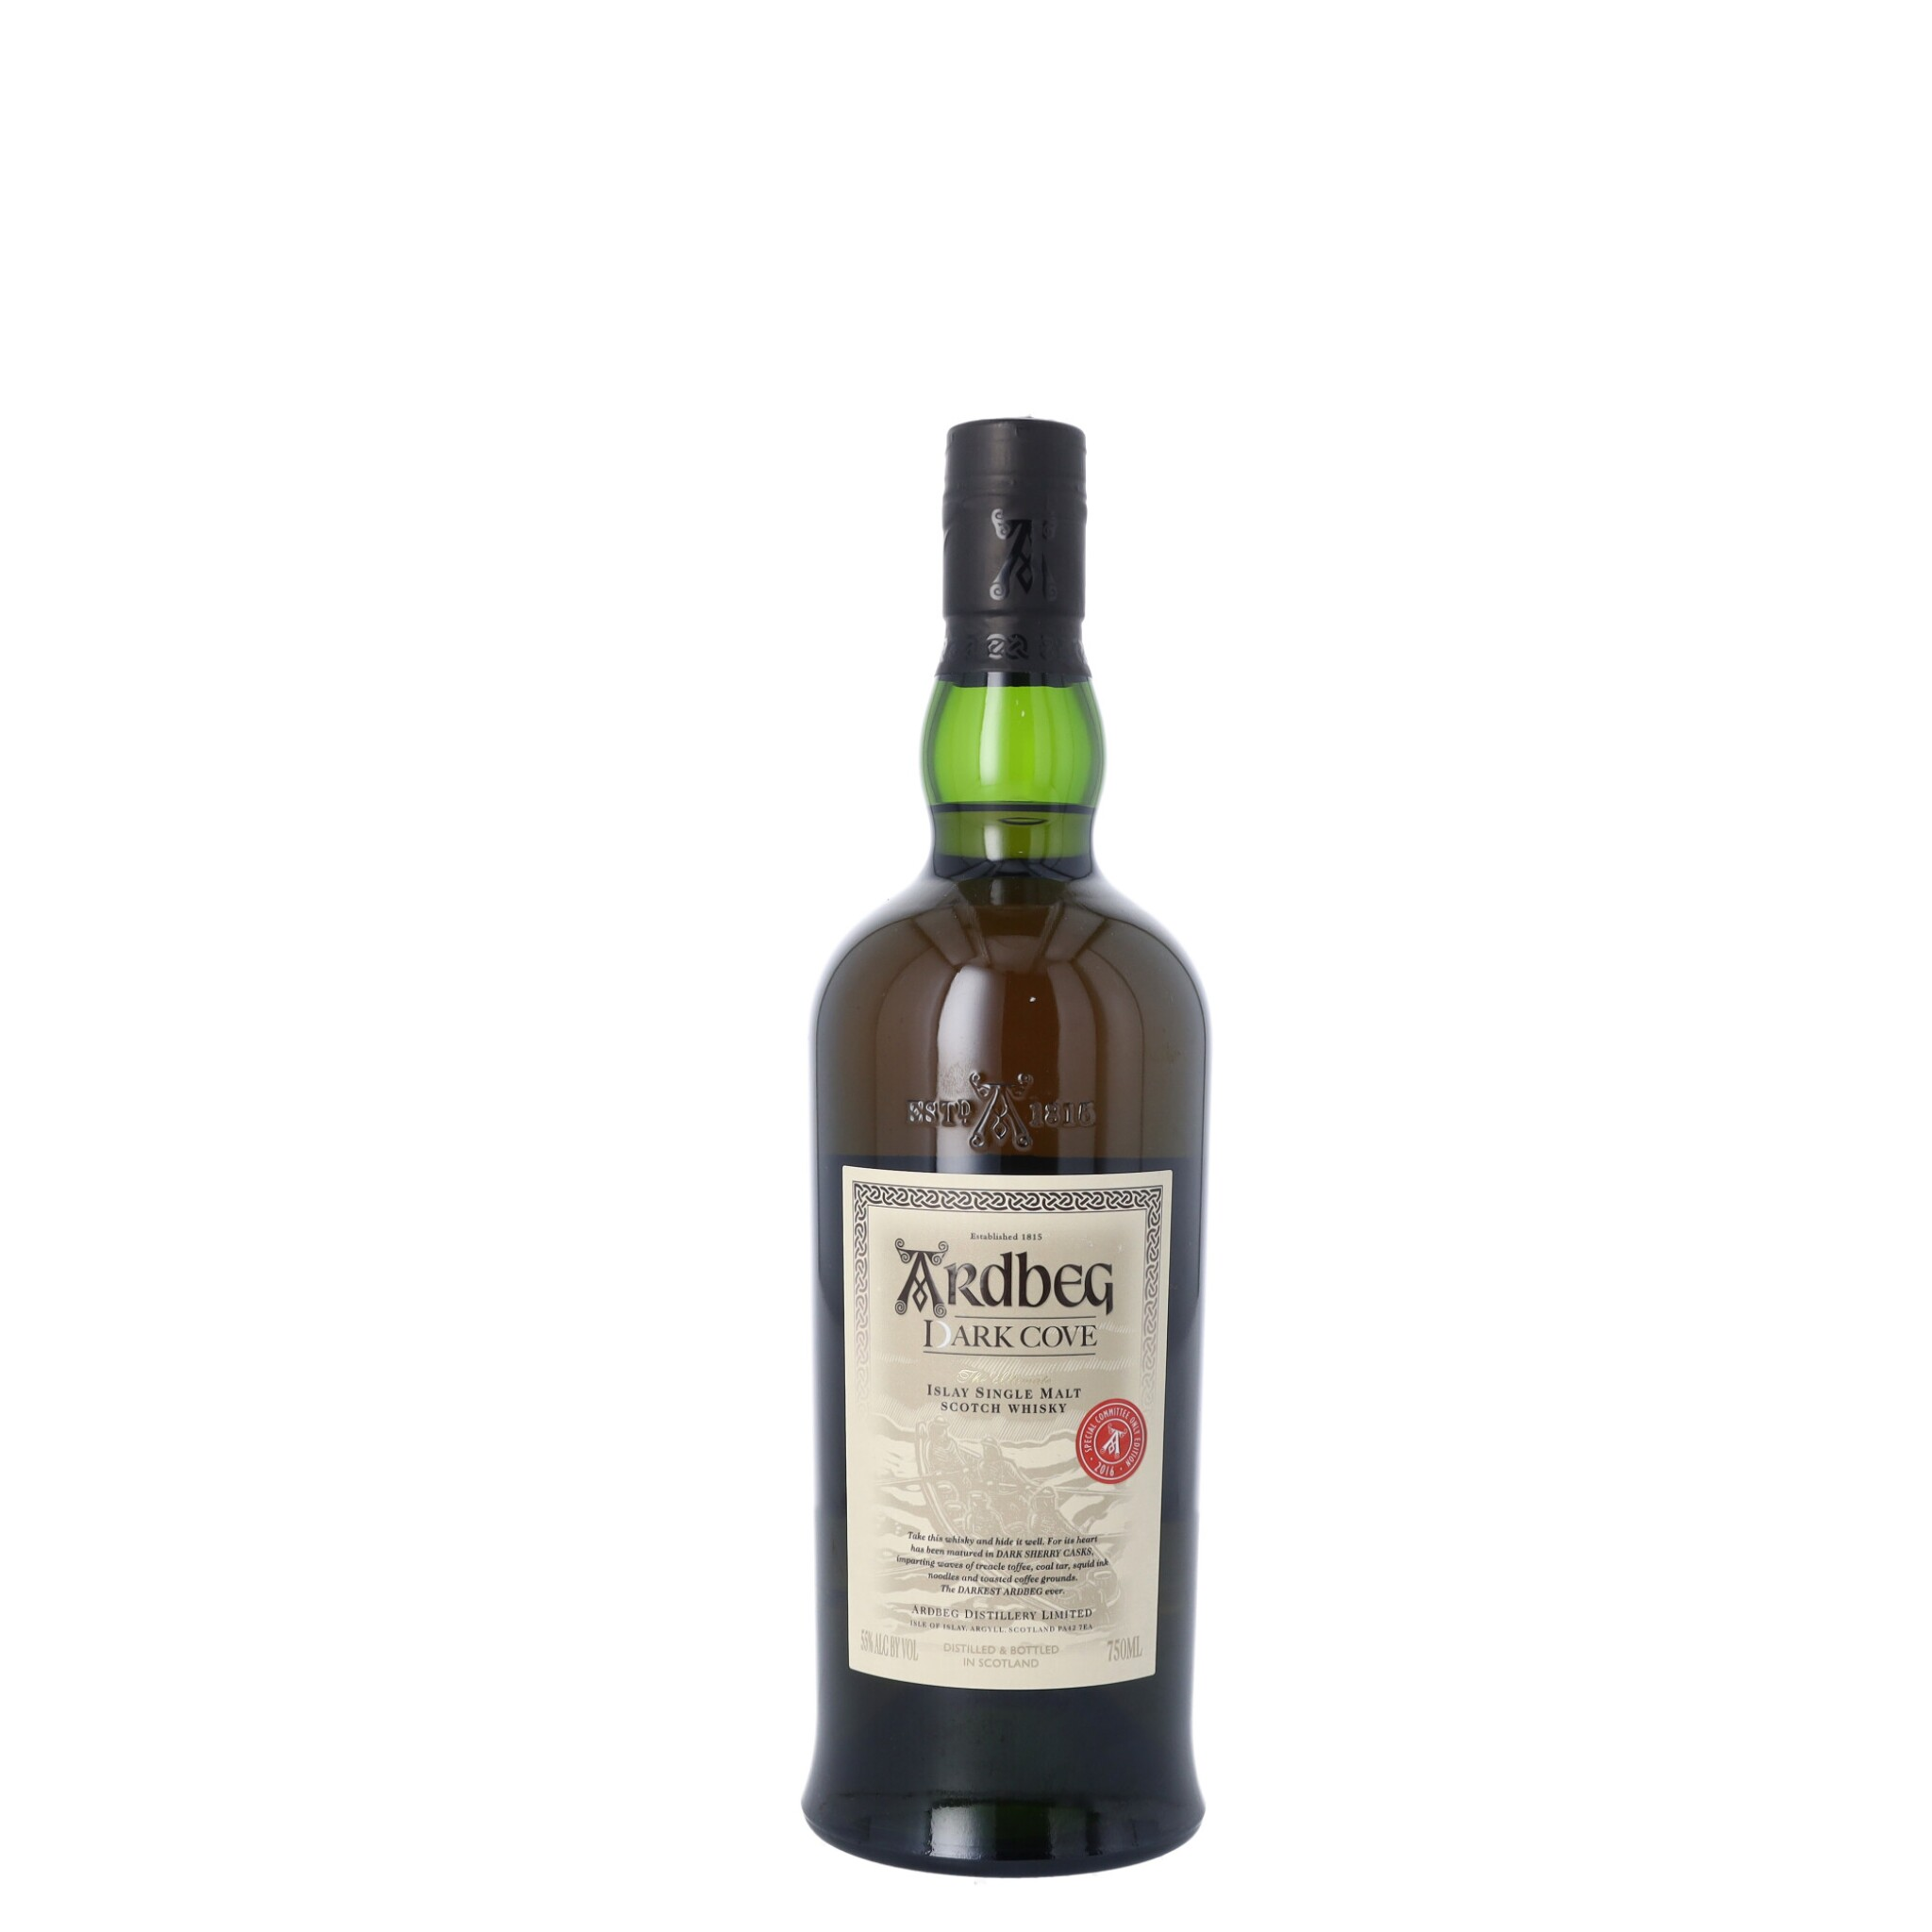 View full screen - View 1 of Lot 72. Ardbeg Dark Cove Committee Release 55.0 abv NV (1 BT75).